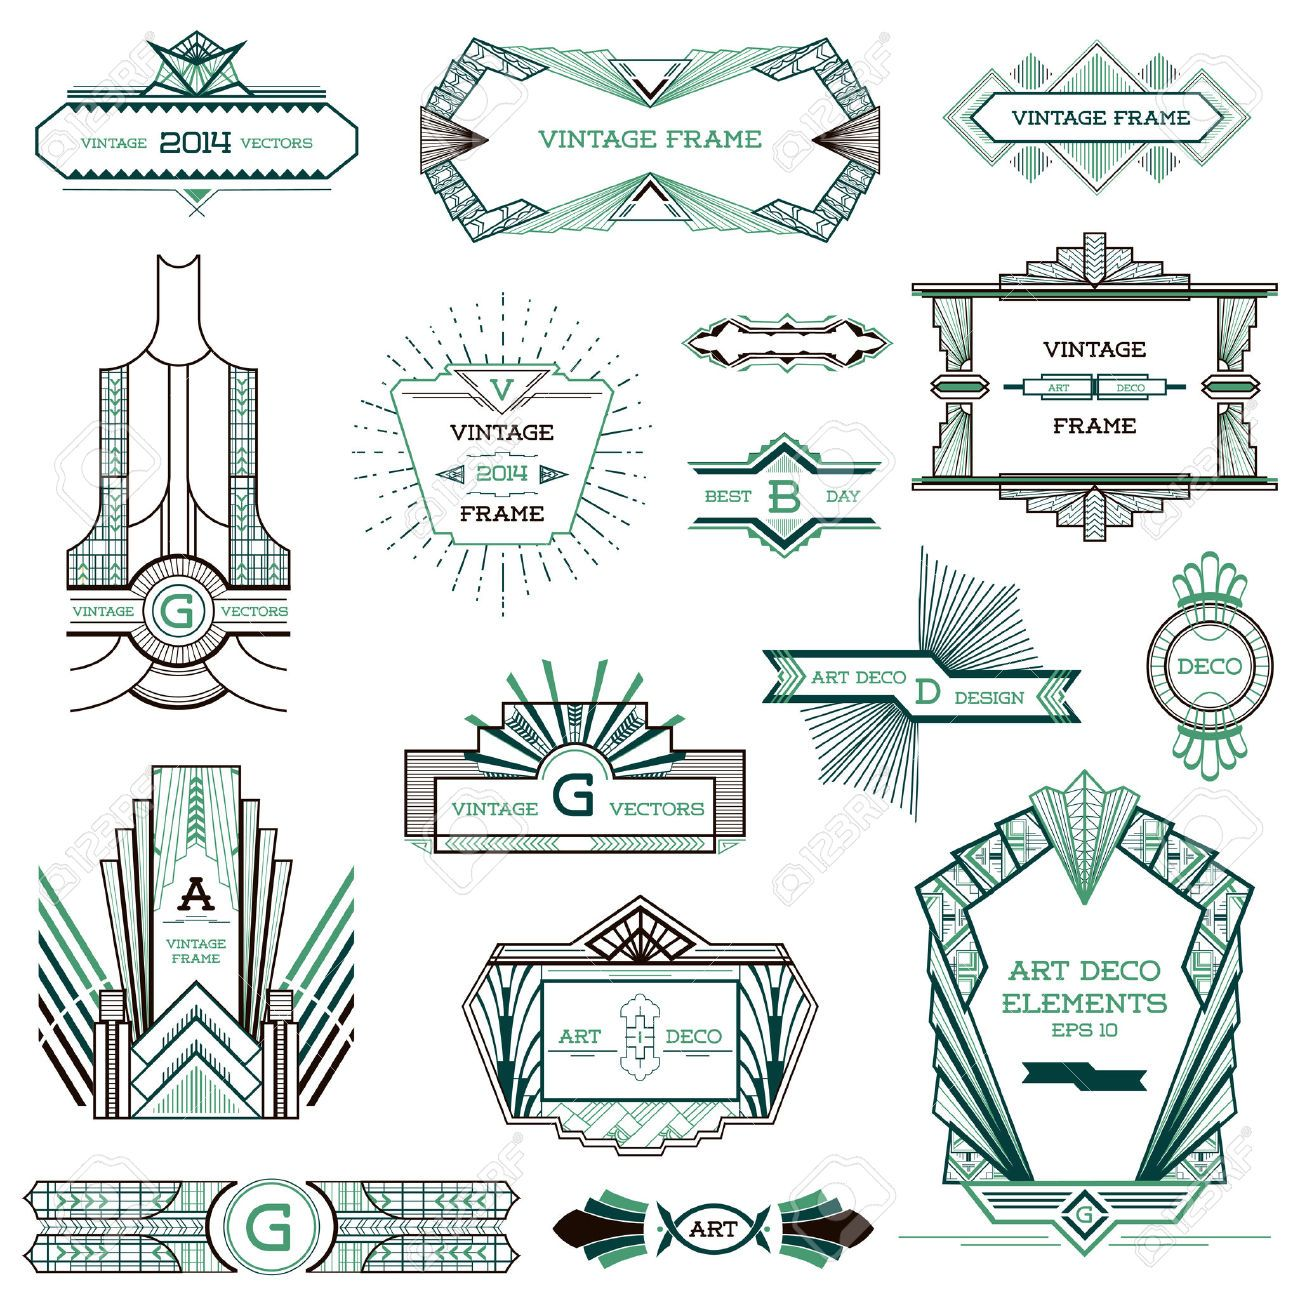 Art deco packaging design google search graphic design - Art deco design elements ...